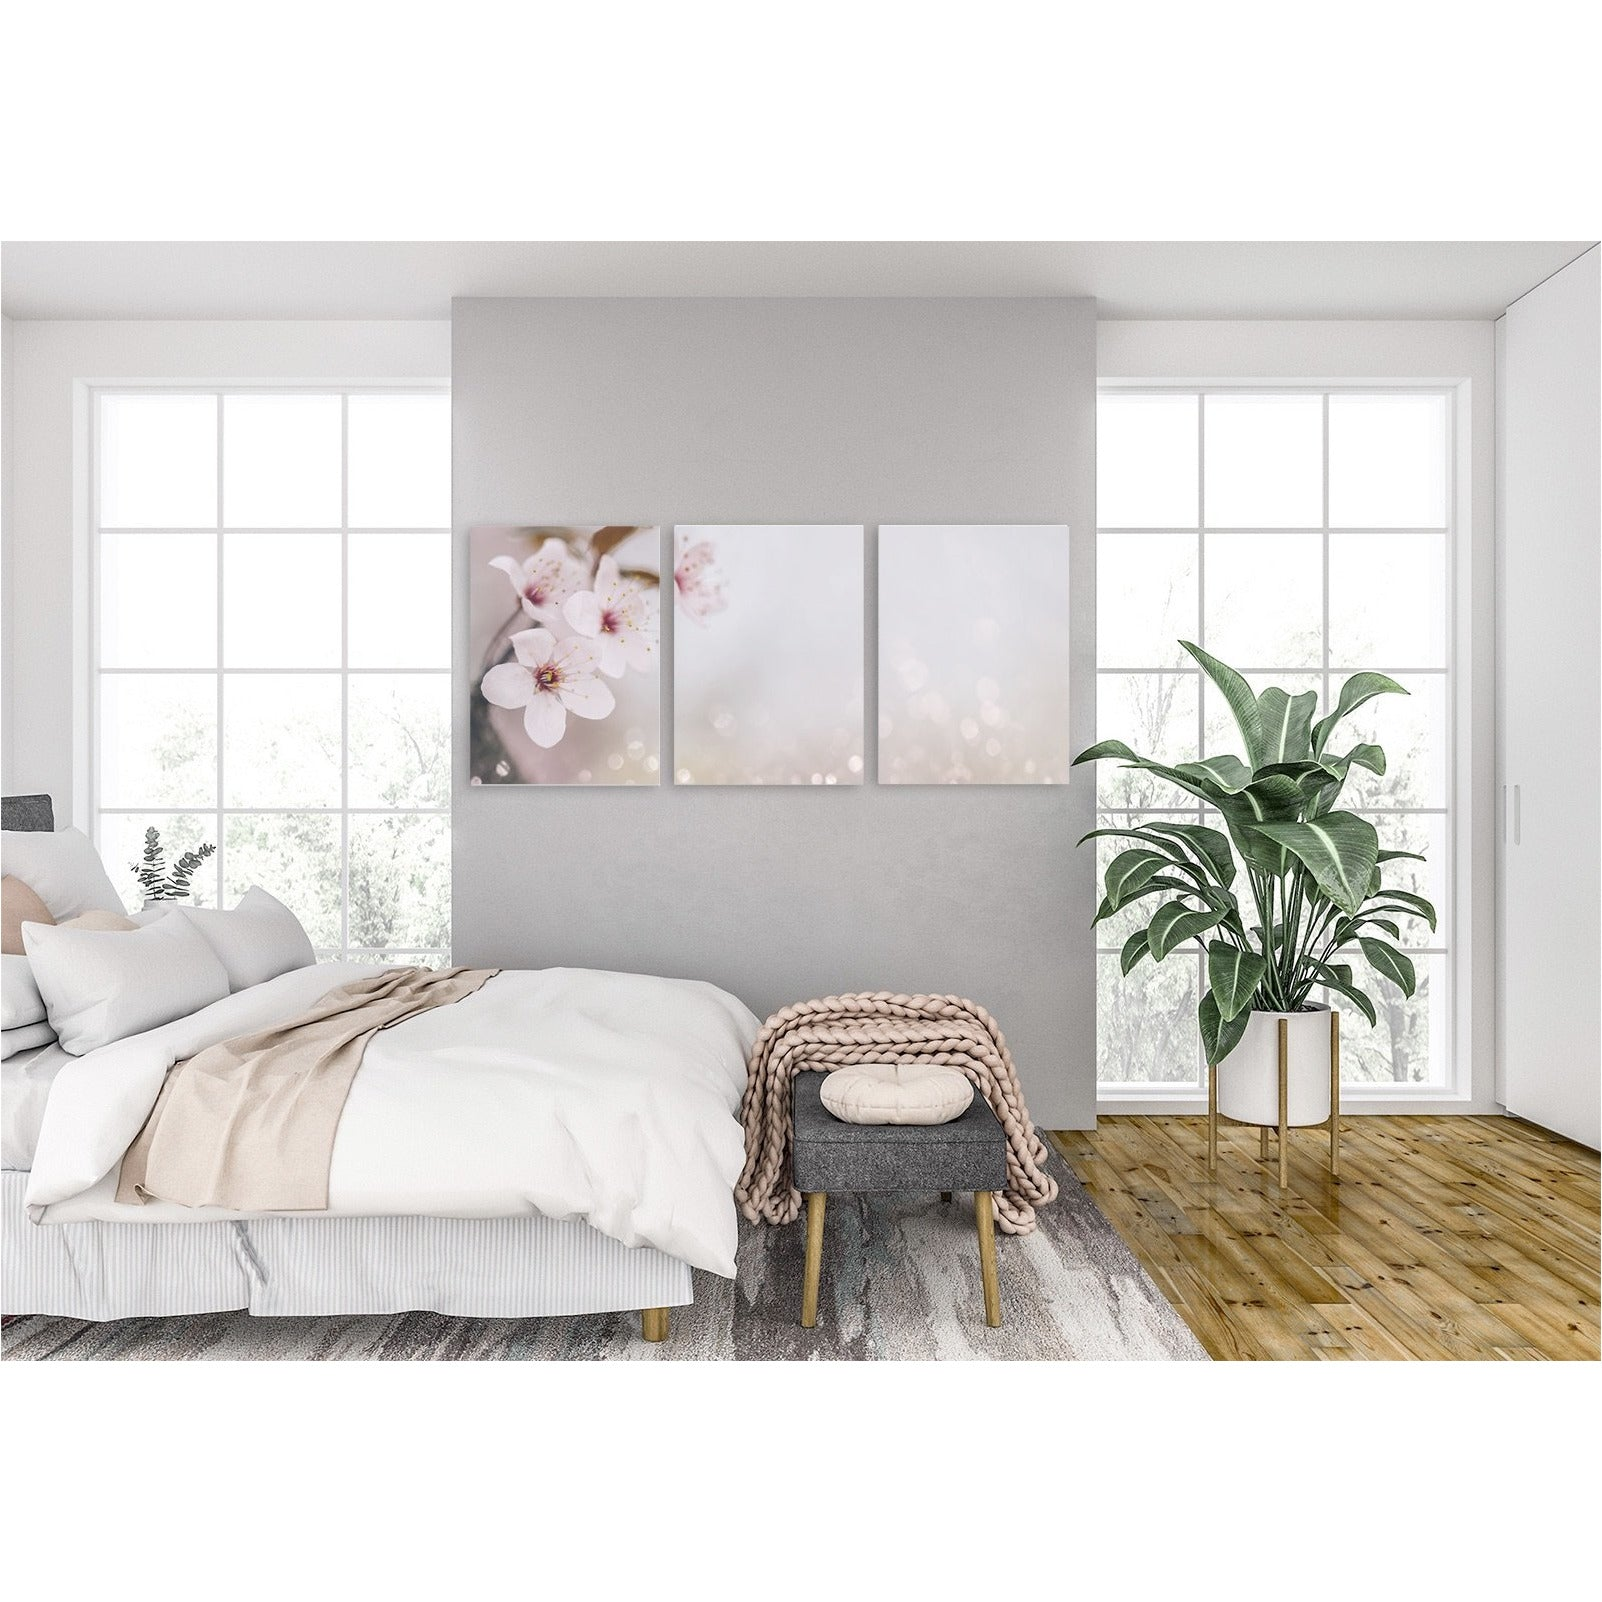 Triptych Canvases freeshipping - Beautiful Spaces Store